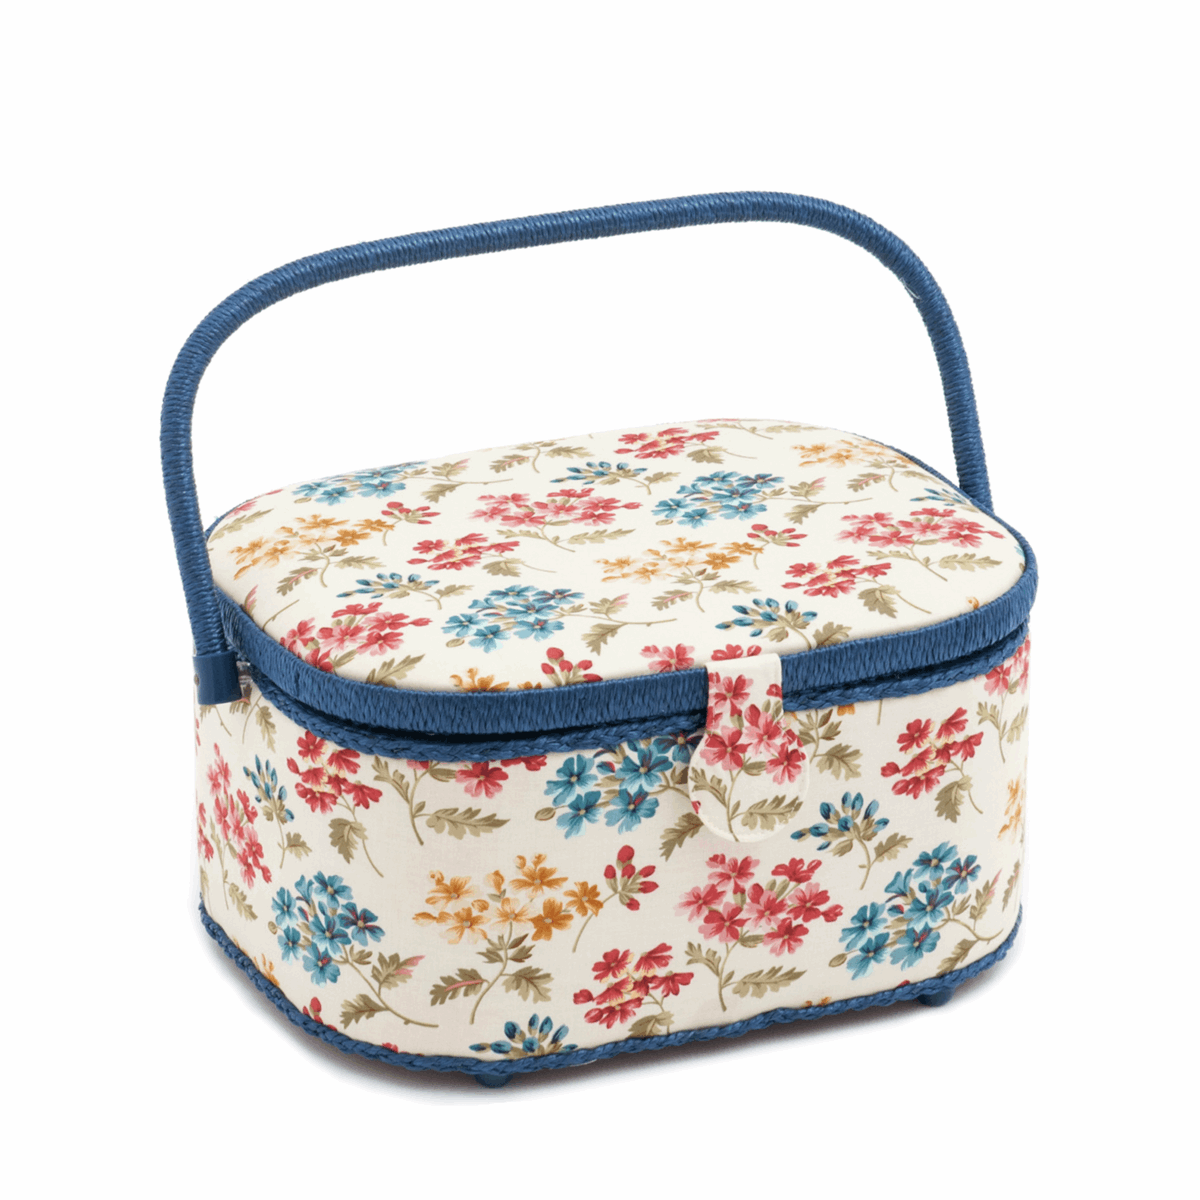 Fairfield Floral Large Oval Sewing Box